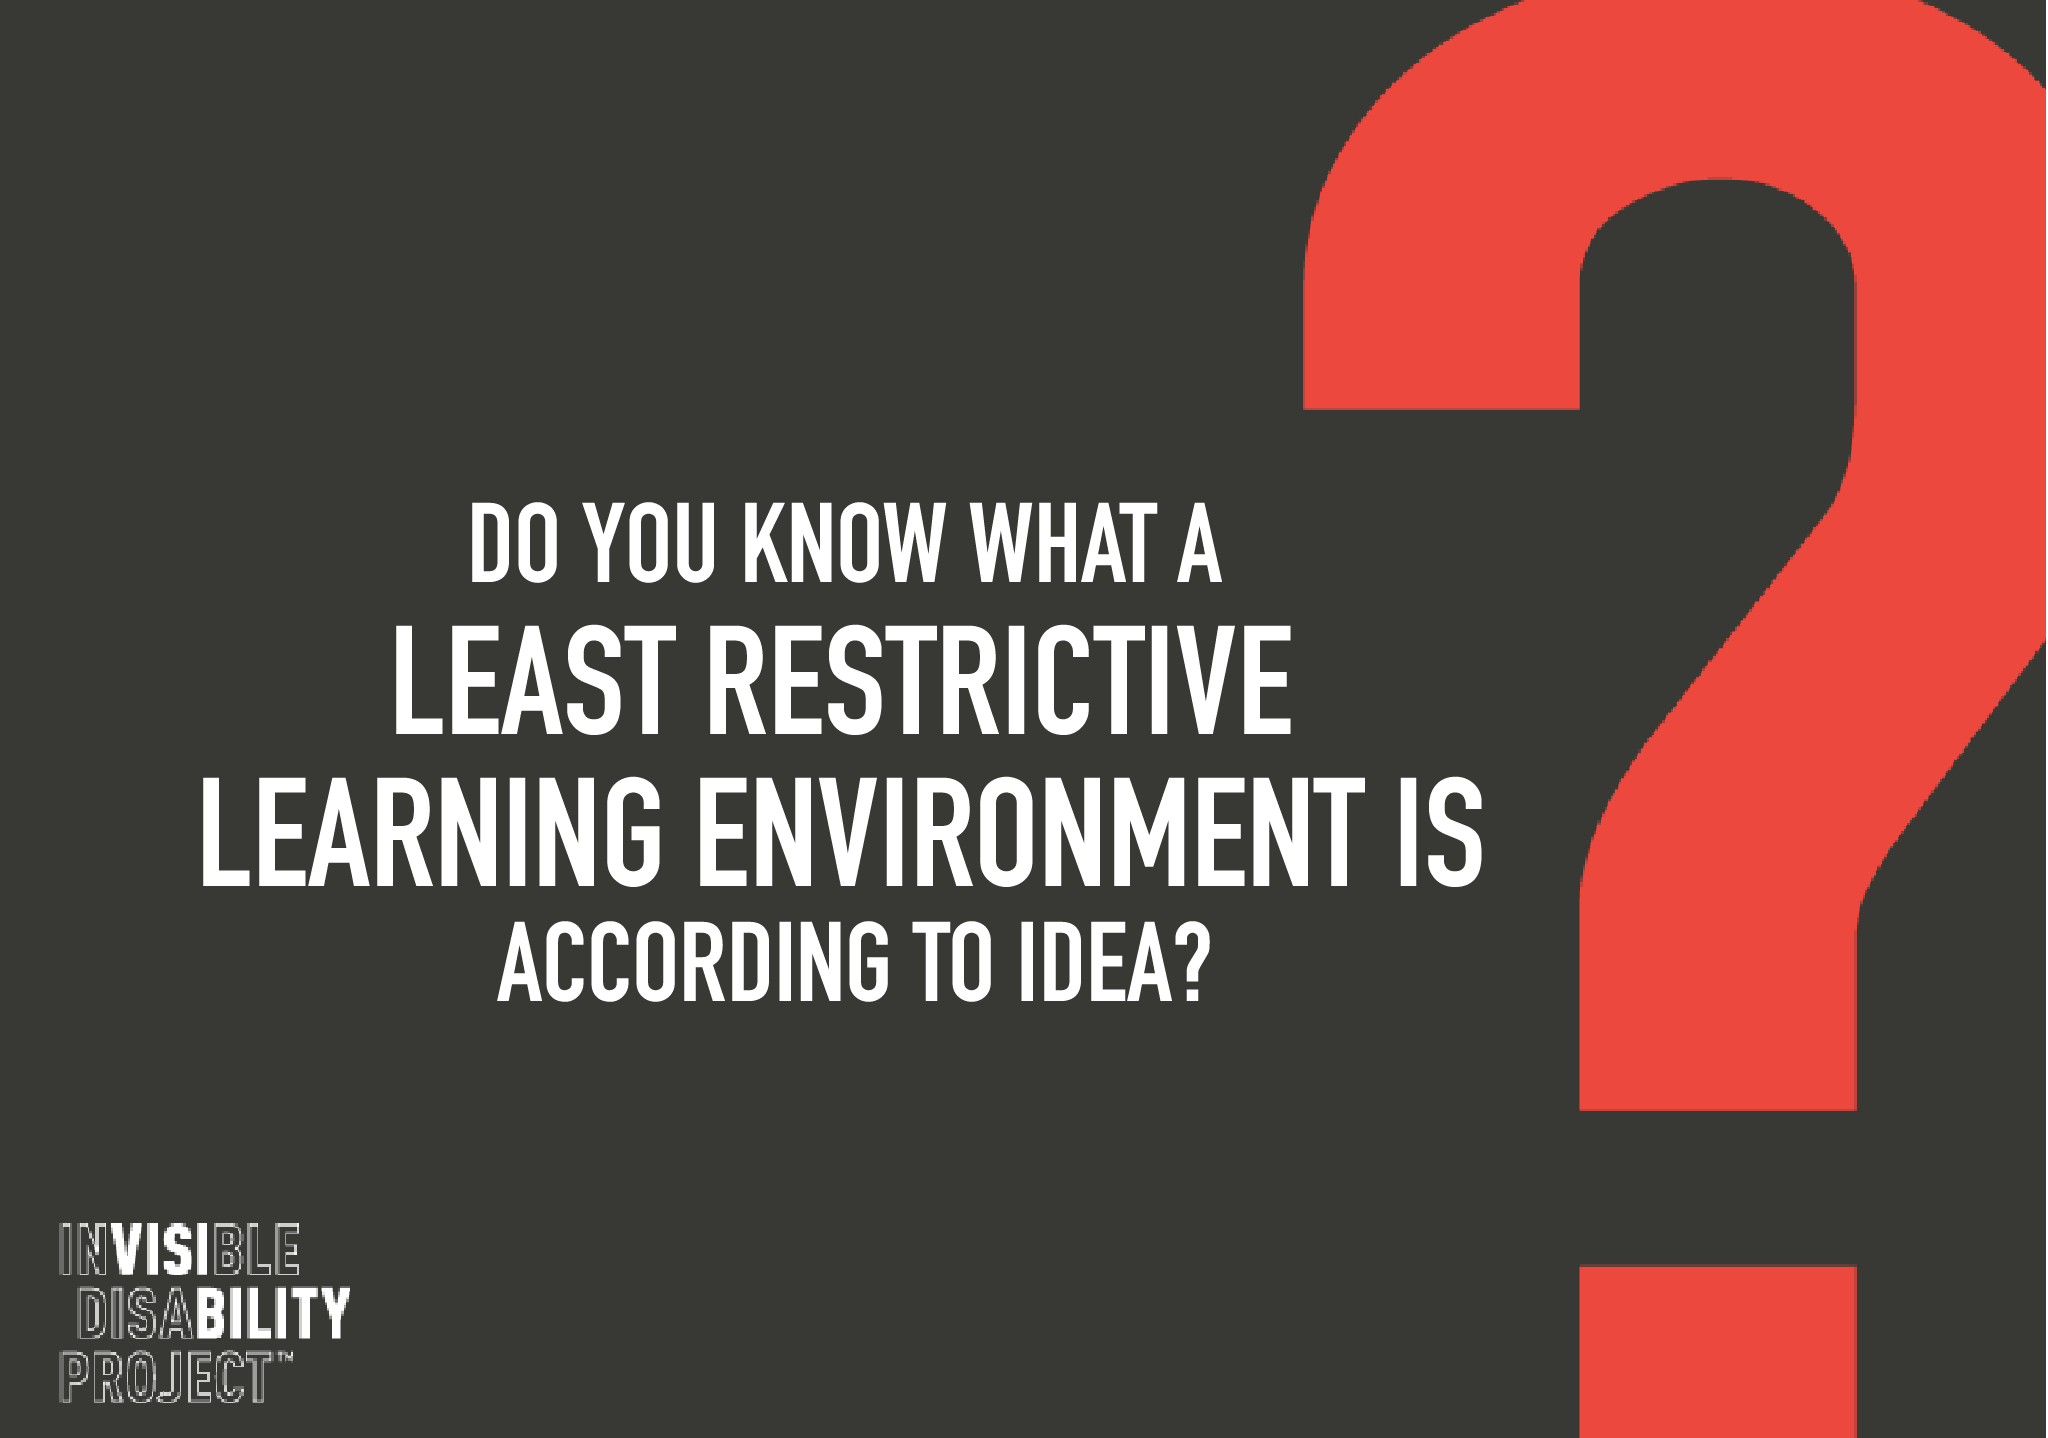 Do you know what a least restrictive learning environment according to IDEA?